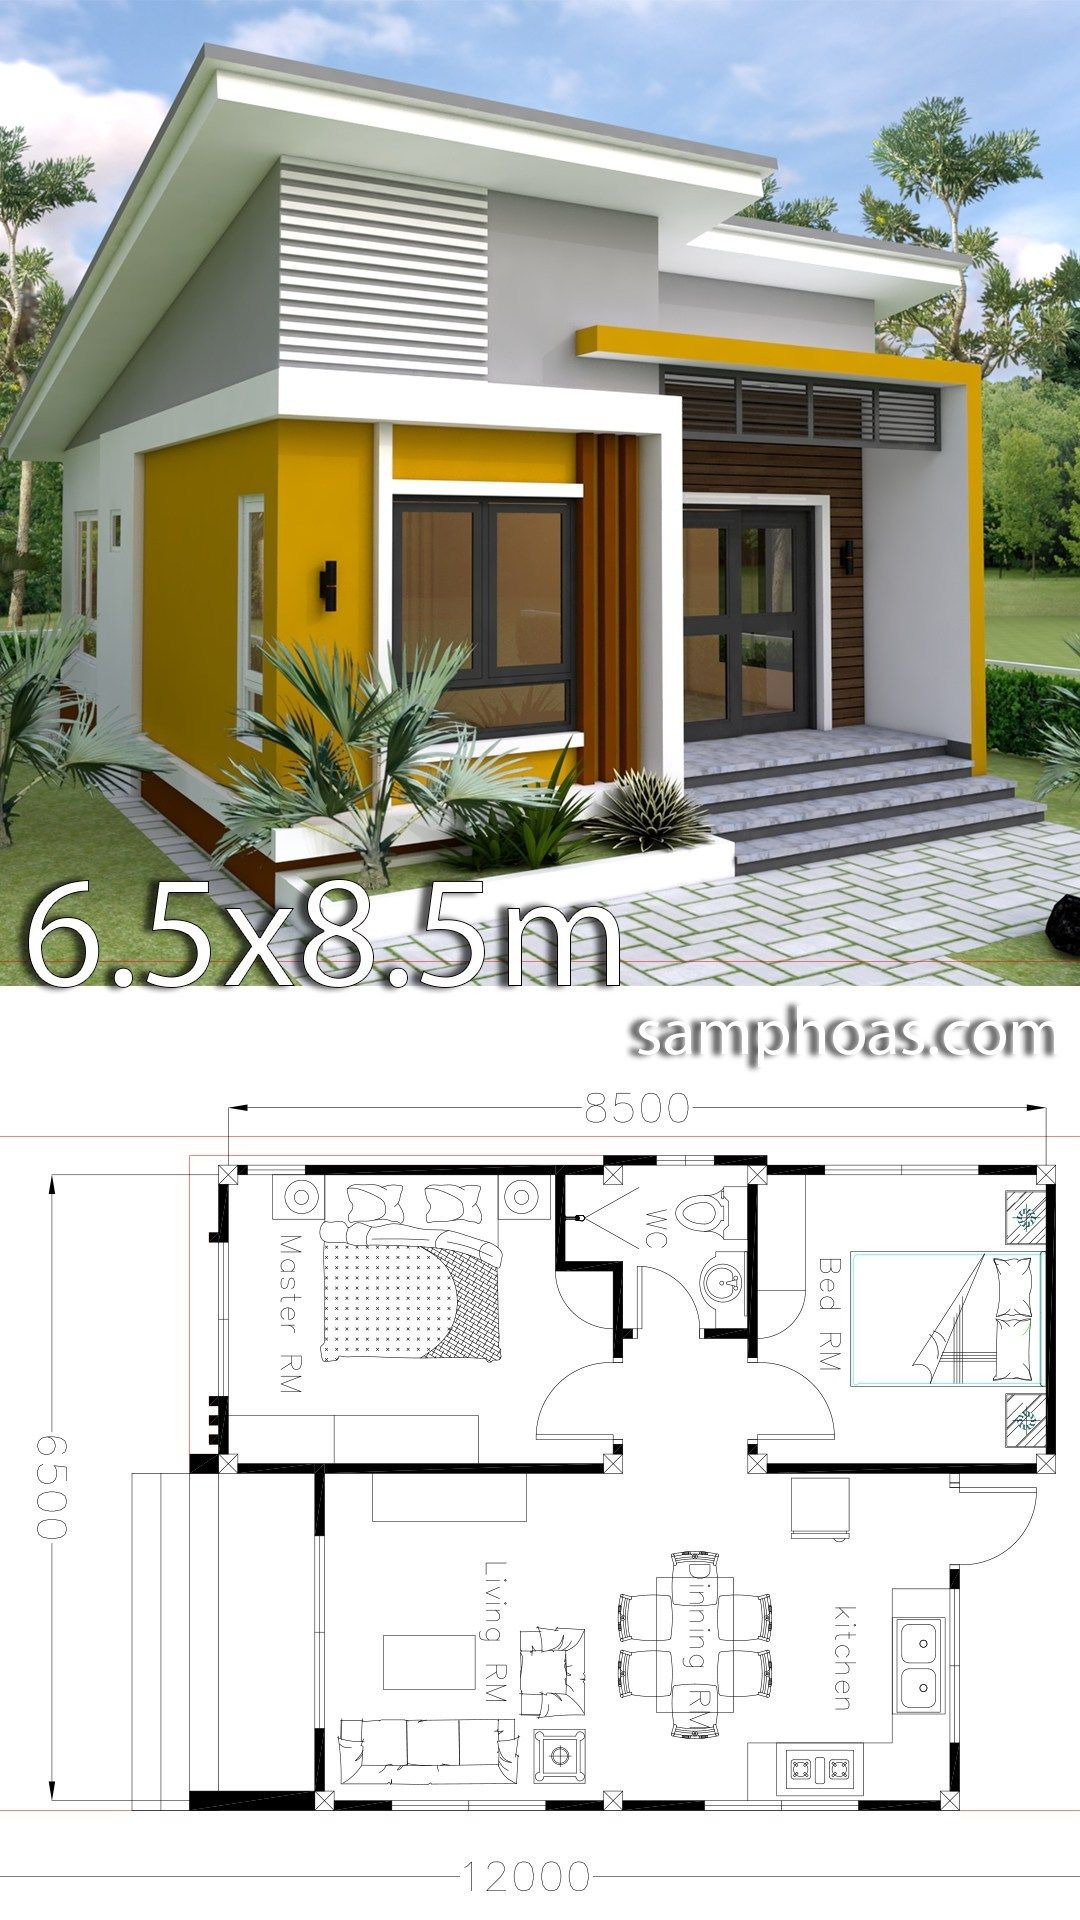 Small House Design Plans Beautiful Small Home Design Plan 6 5x8 5m with 2 Bedrooms with Images